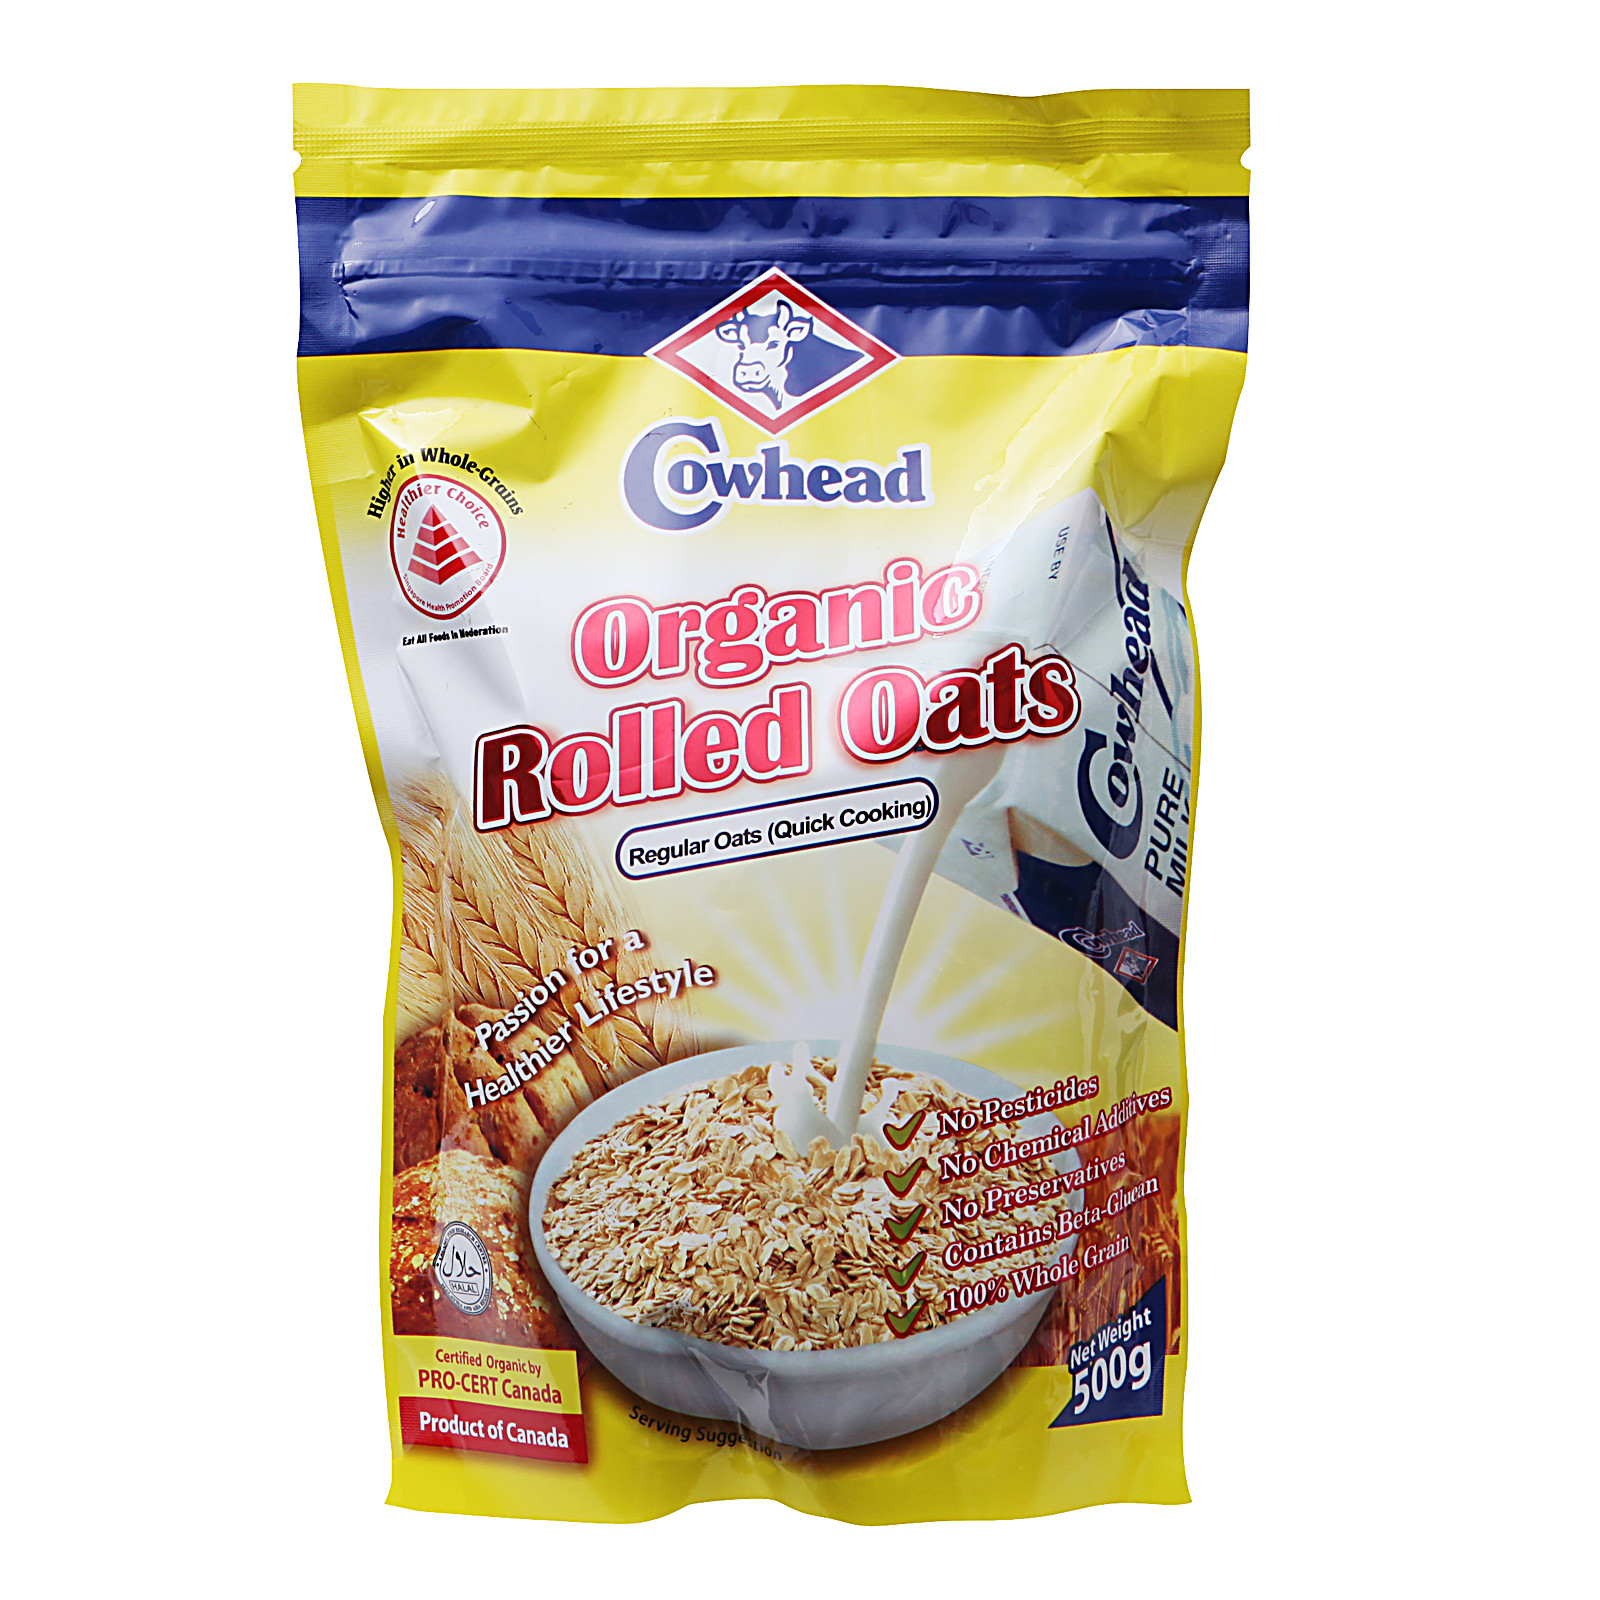 Organic Rolled Oats  Cowhead Regular Quick Cooking Organic Rolled Oats